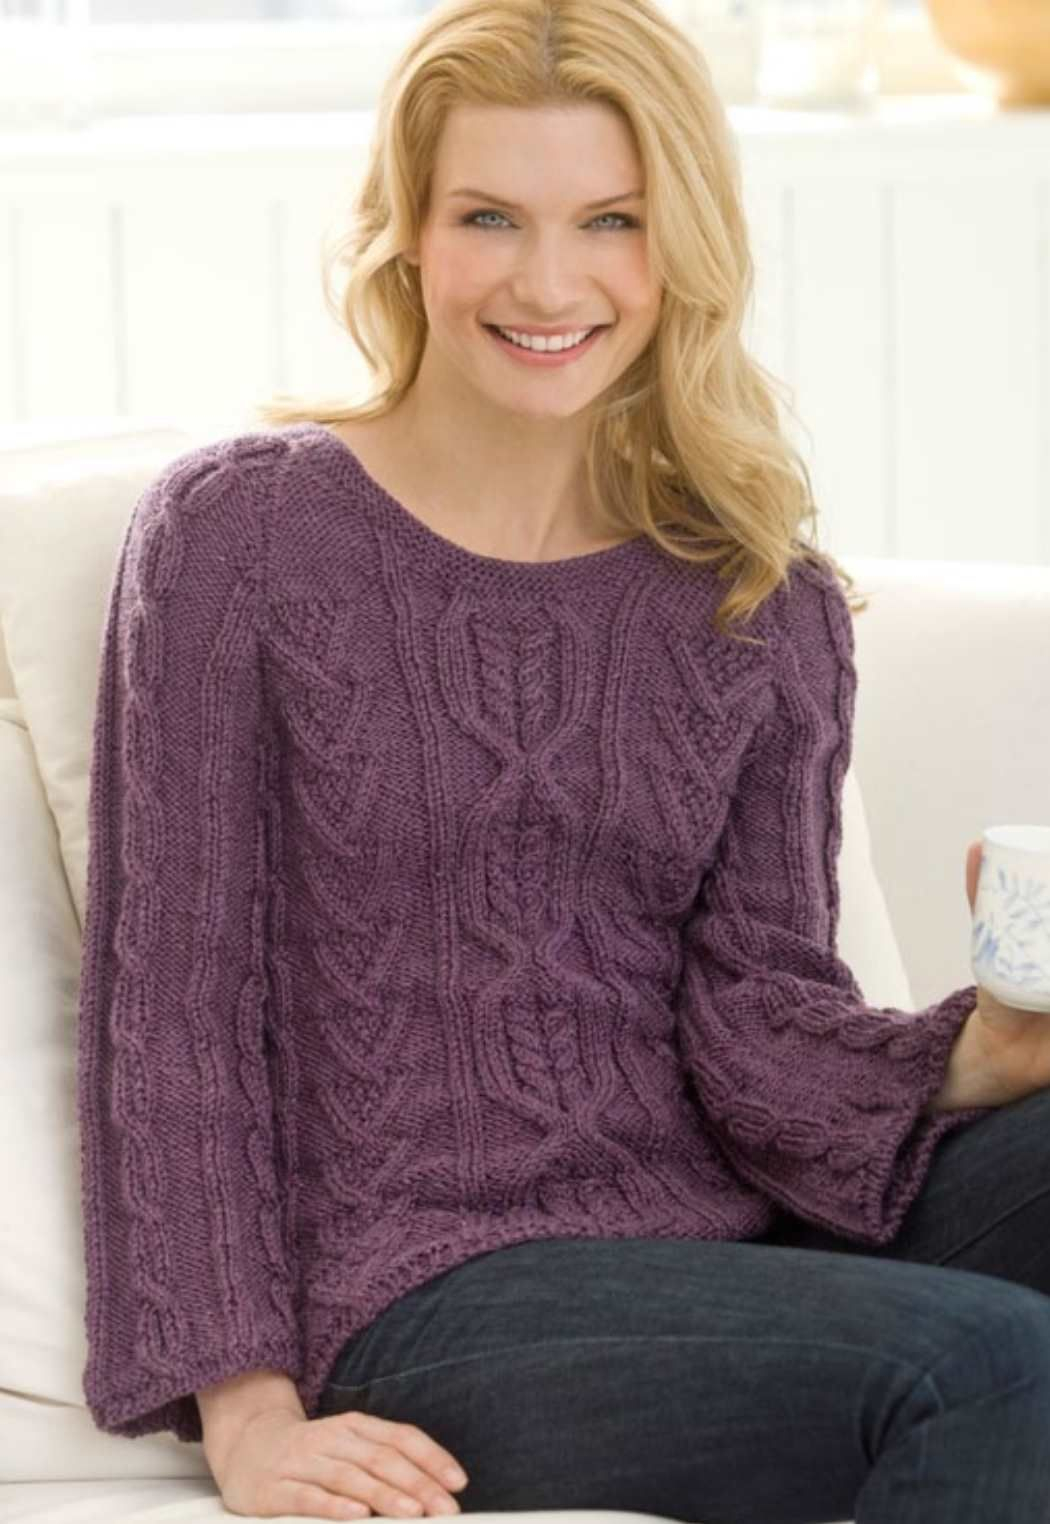 Aran Knitting Patterns Free New Aran Sweater Free Knitting Pattern Free Womens Sweaters